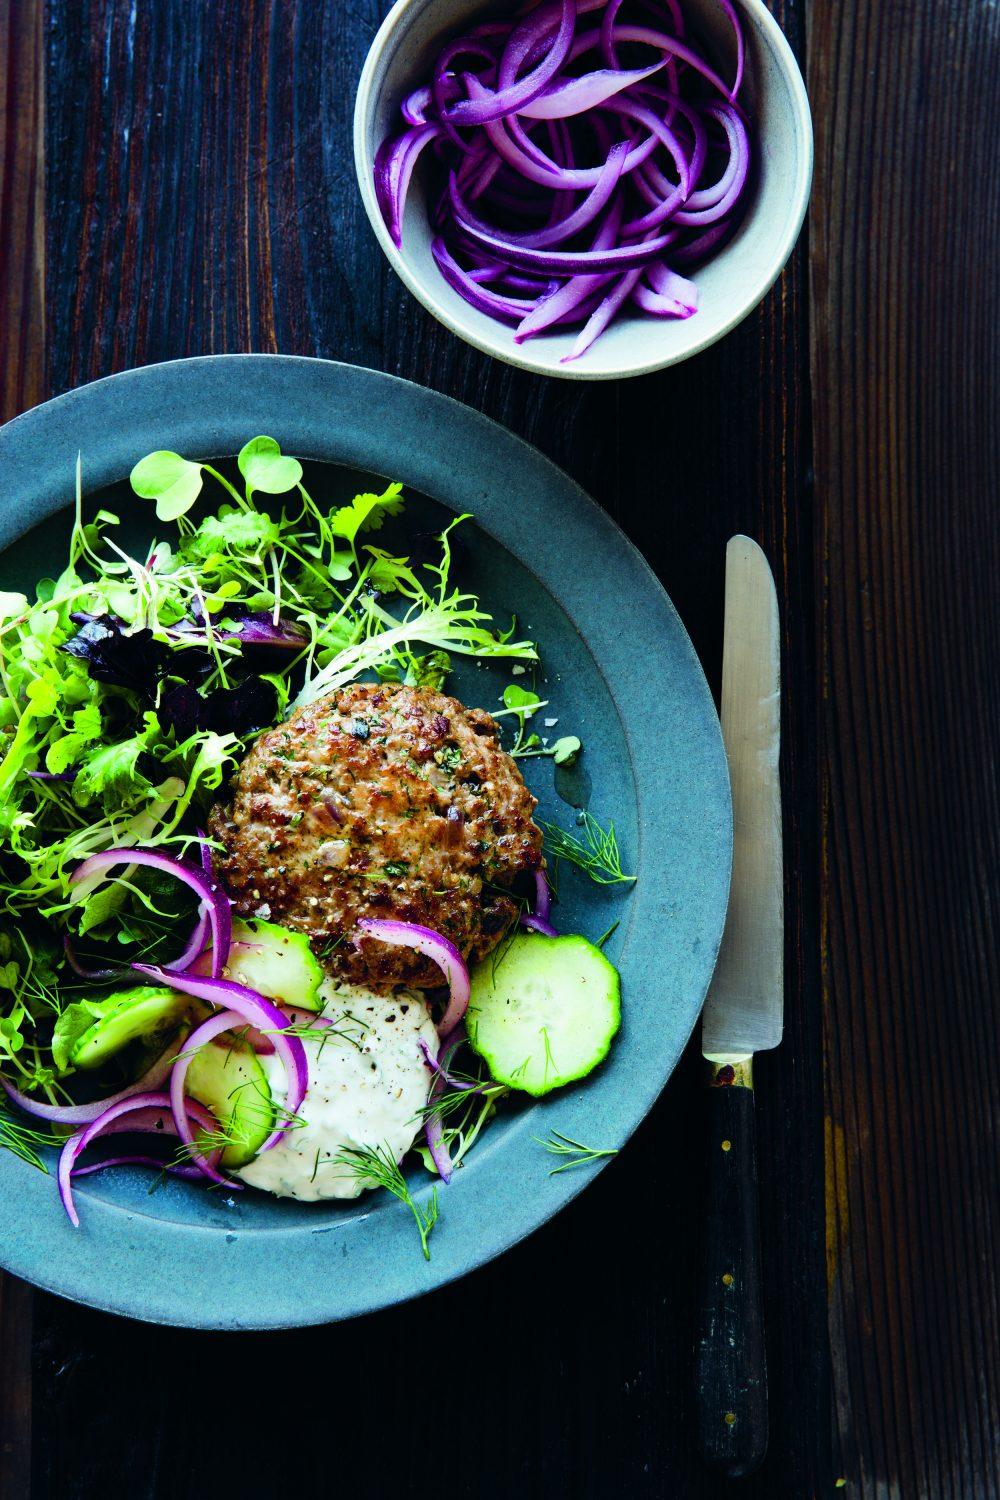 Lamb burgers with Yogurt sauce